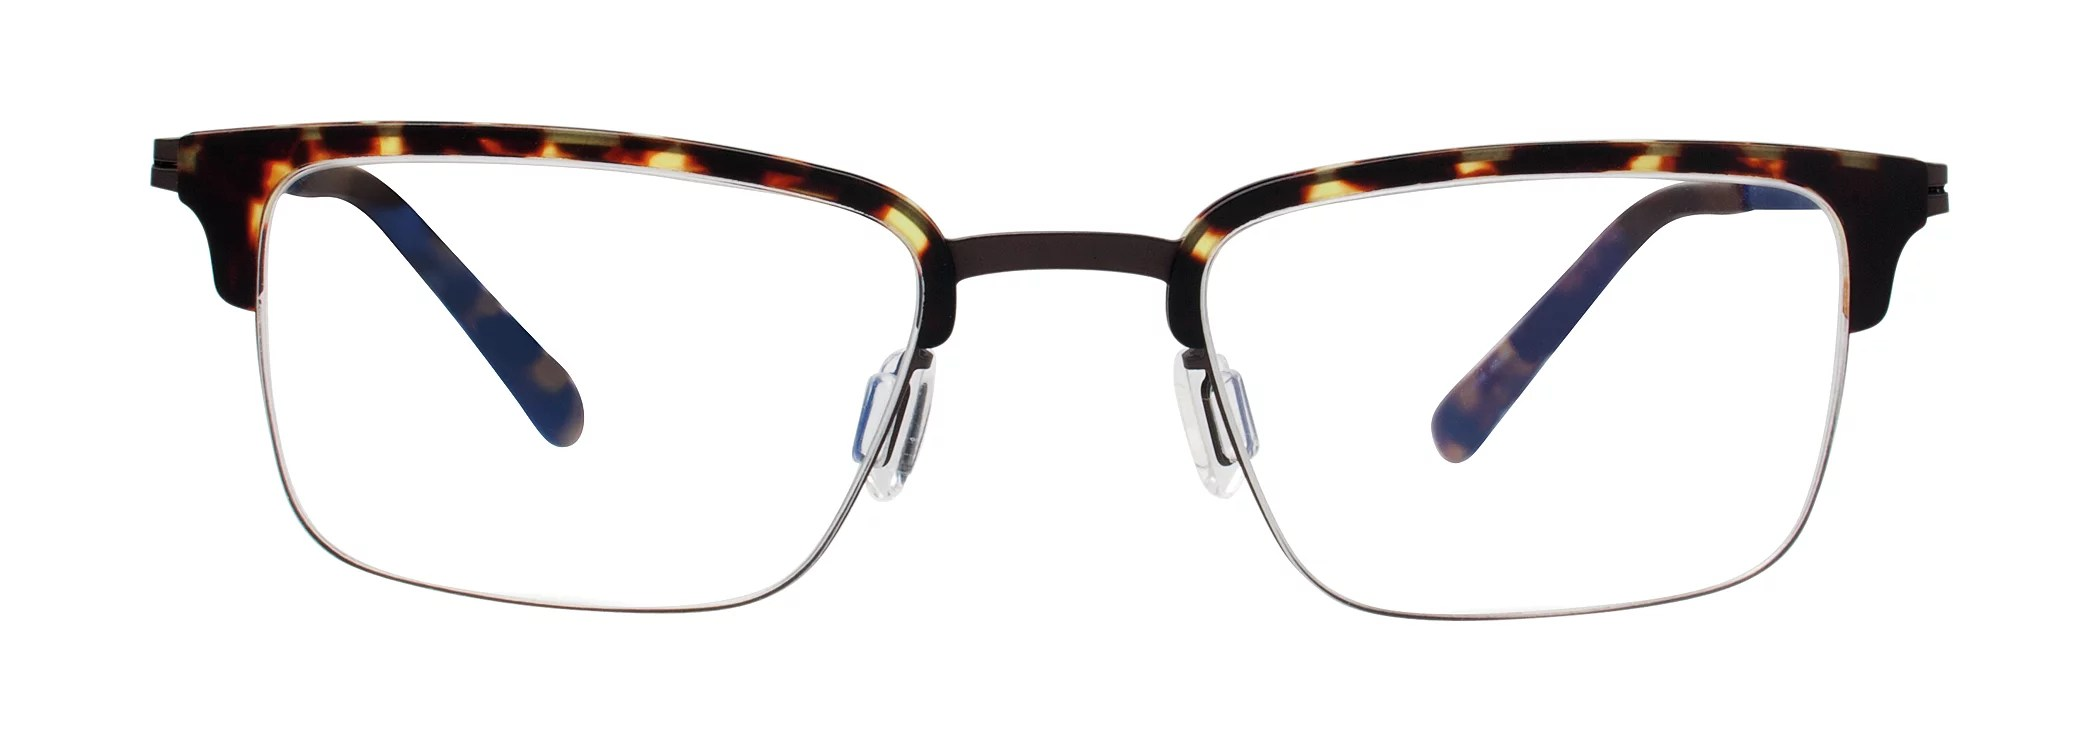 Modo 4062 Opticouture Only 186 90 At Checkout